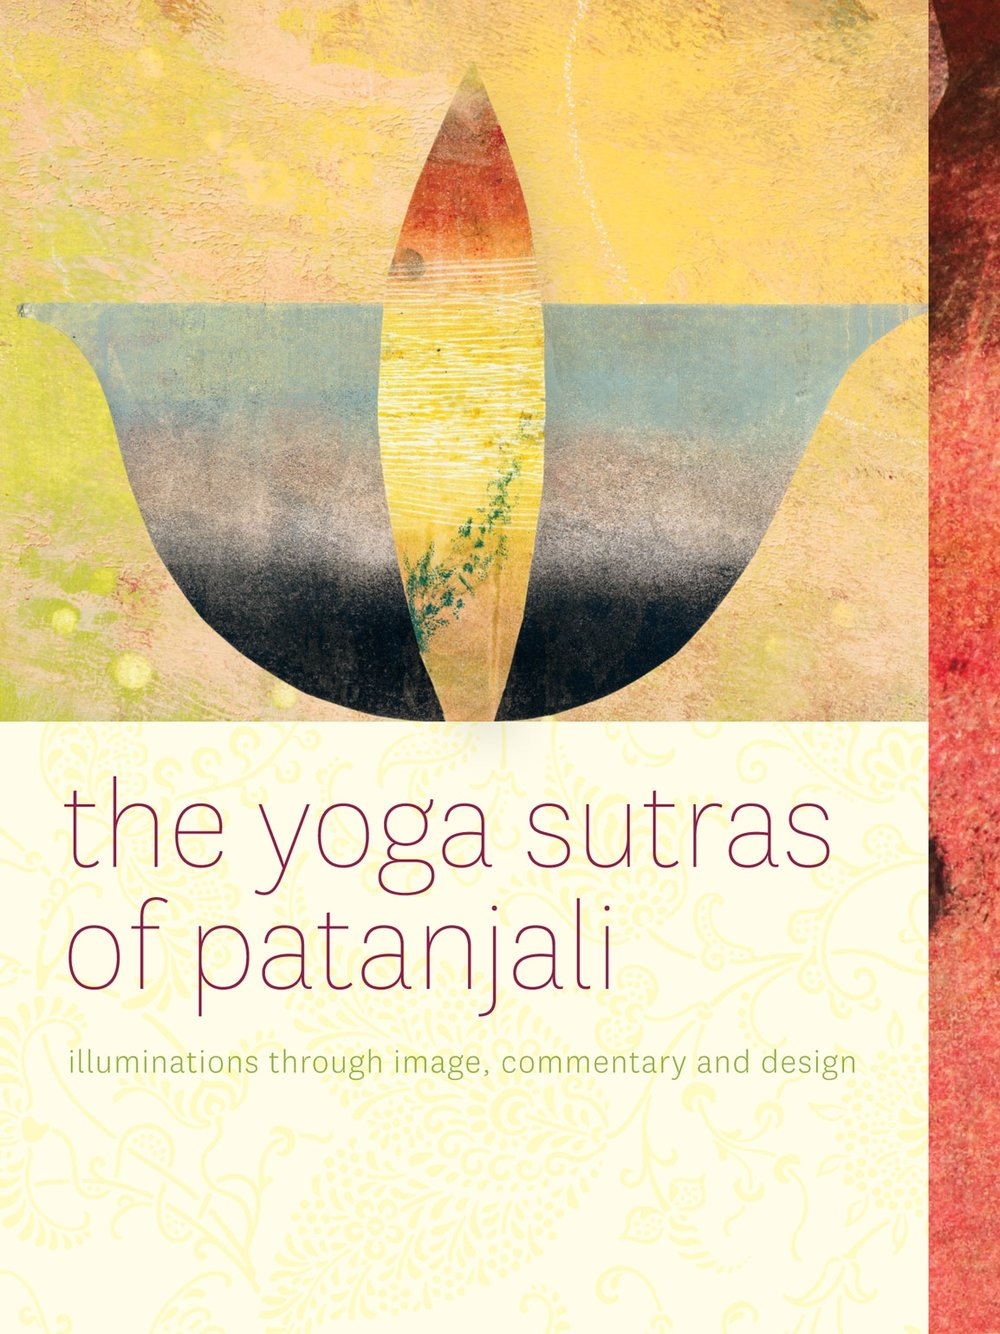 yoga_sutras_cover_final_72ppi.jpg